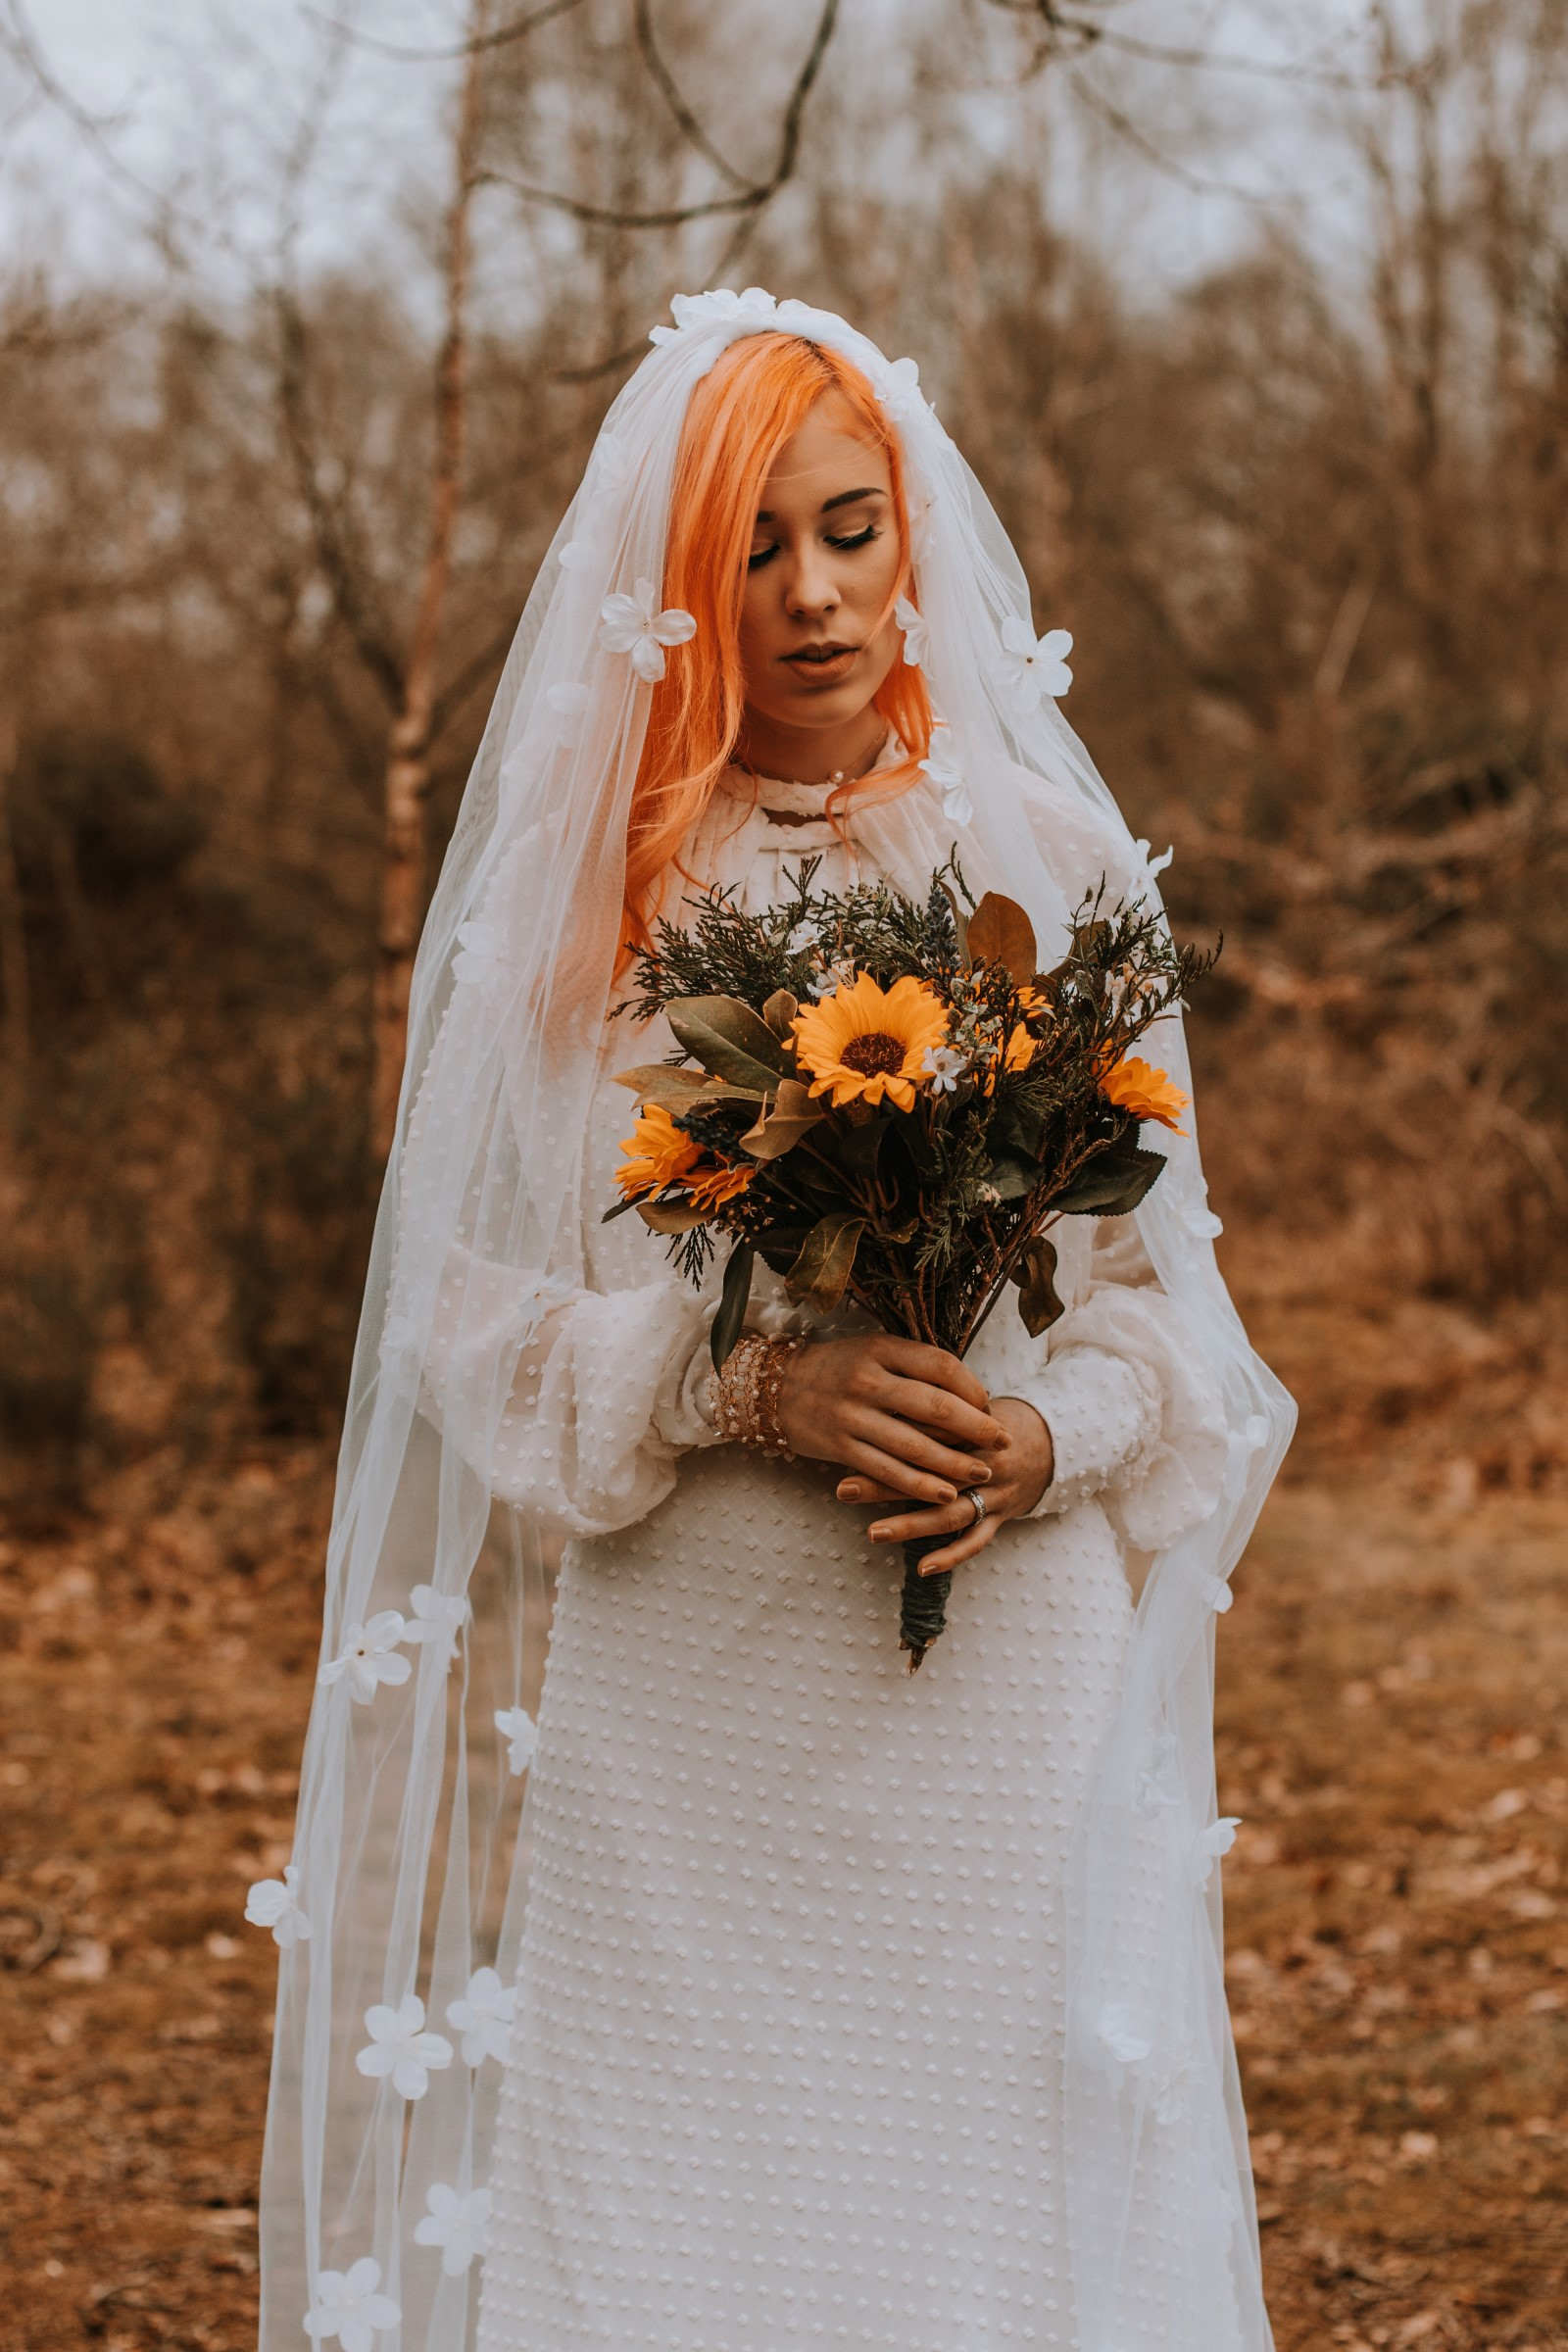 Alternative Forest Wedding - Sammy Leas Retro Emporium -Photography By Wills- alternative wedding - unconventional wedding- edgy woodland wedding- bride with sunflowers